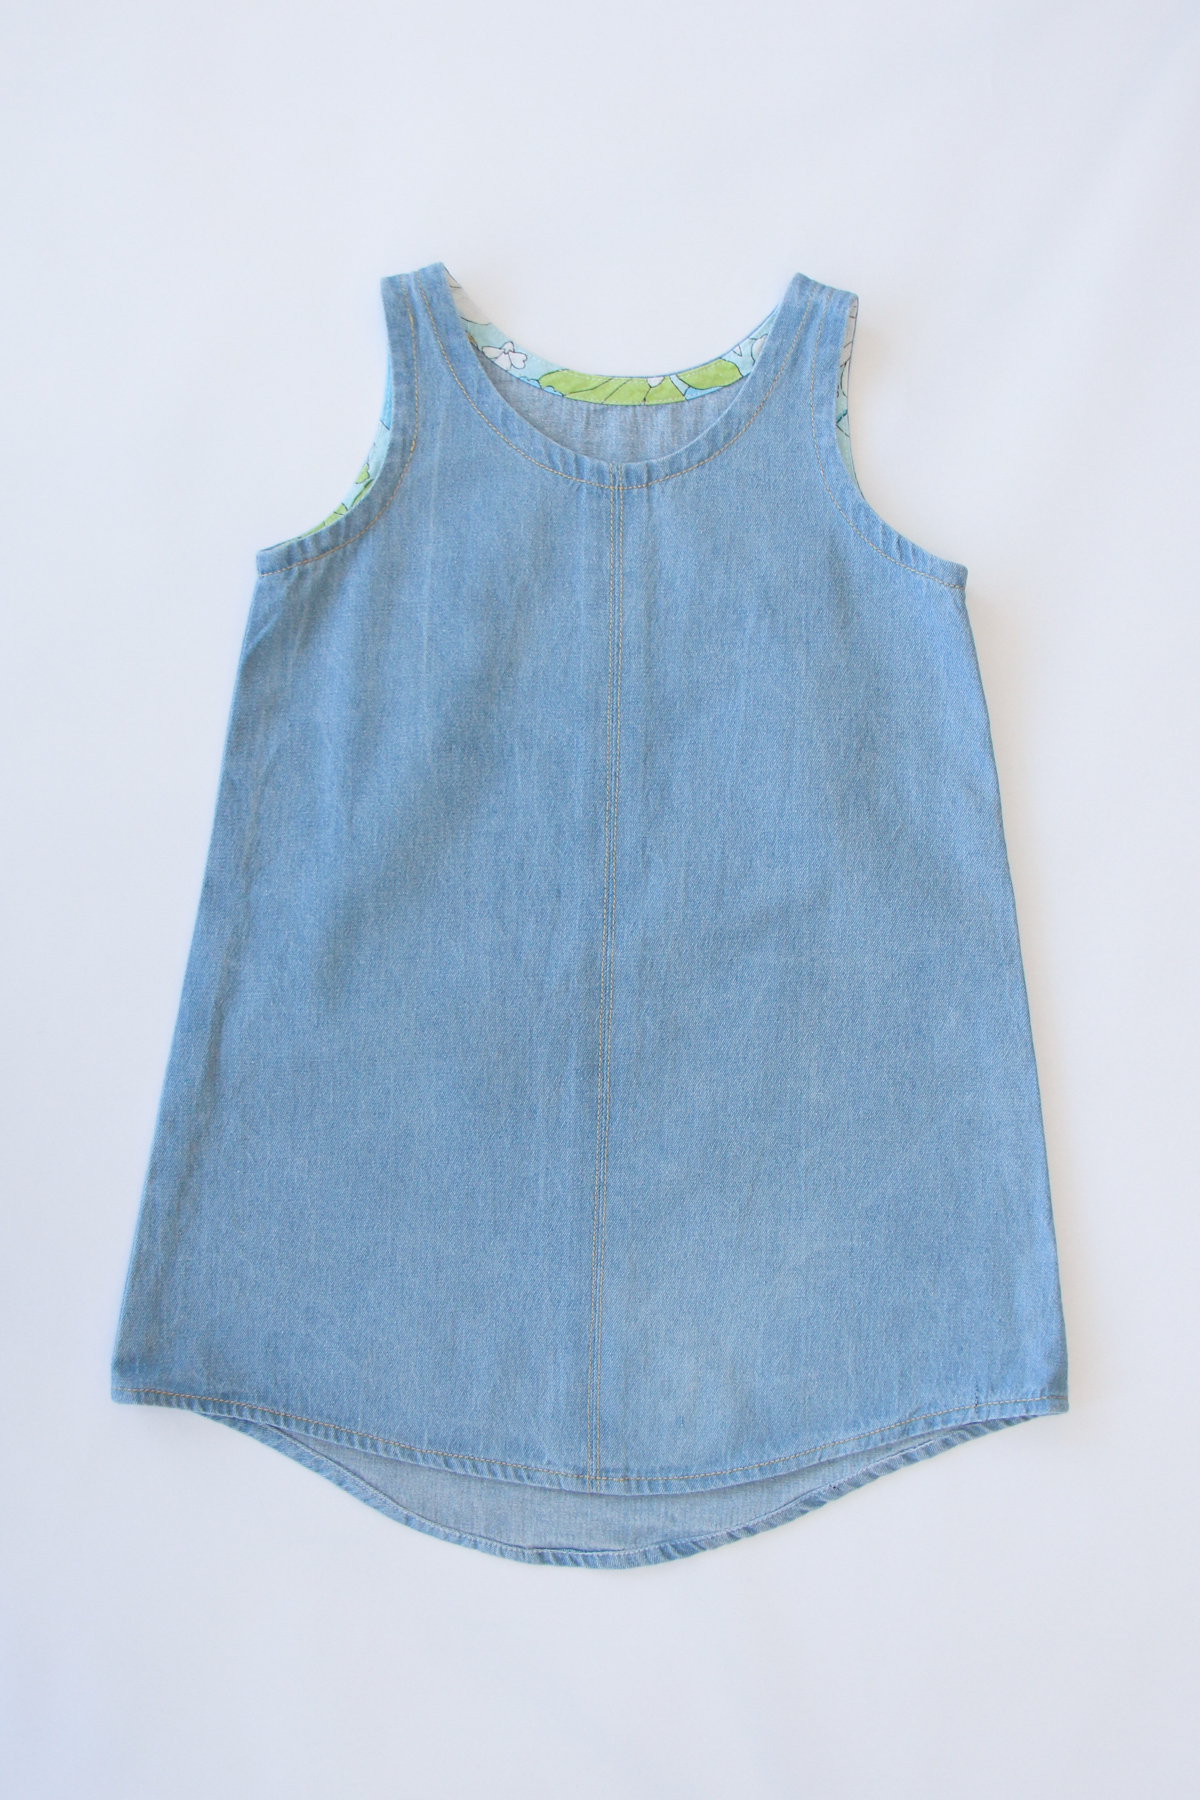 Introducing the Mini Eucalypt woven tank and dress sewing pattern by Megan Nielsen!